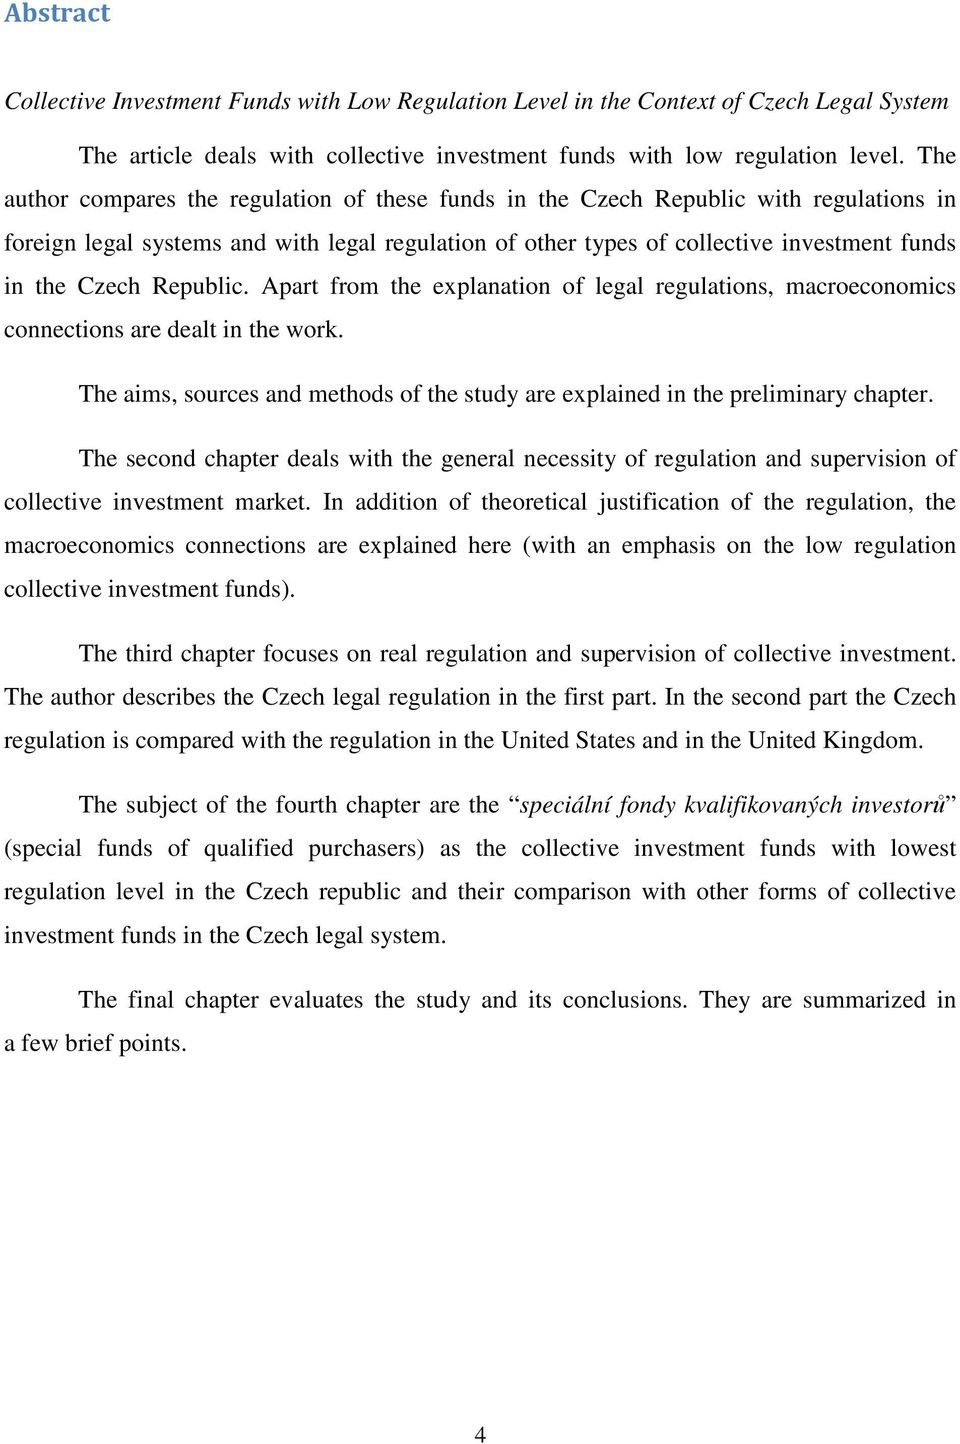 Republic. Apart from the explanation of legal regulations, macroeconomics connections are dealt in the work. The aims, sources and methods of the study are explained in the preliminary chapter.